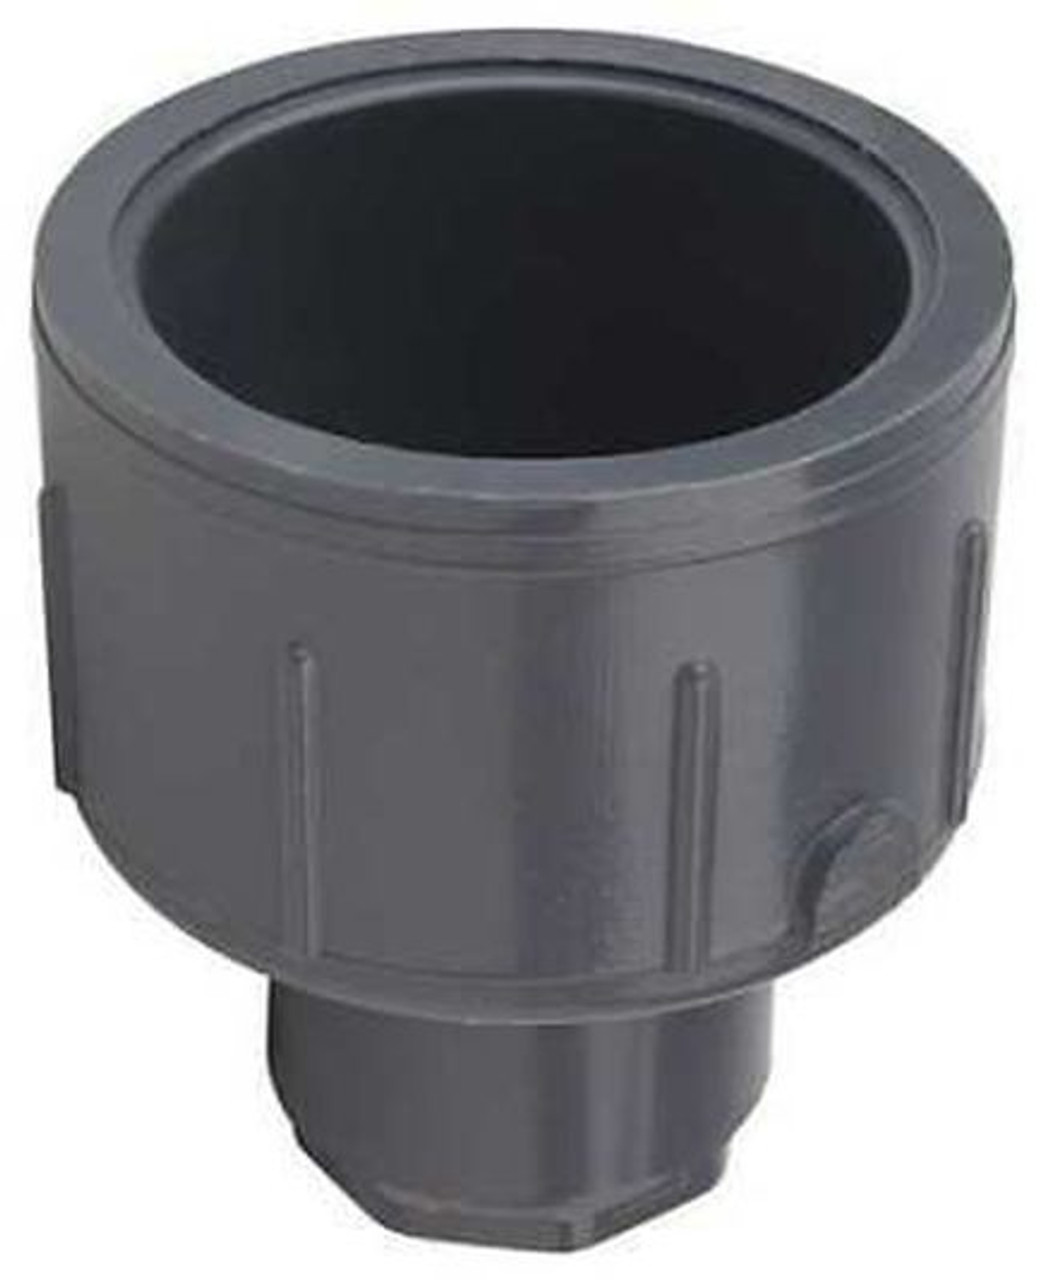 "+GF+ | 1-1/2"" x 1-1/4"" Reducing Coupling (SxS)  [829-212]"